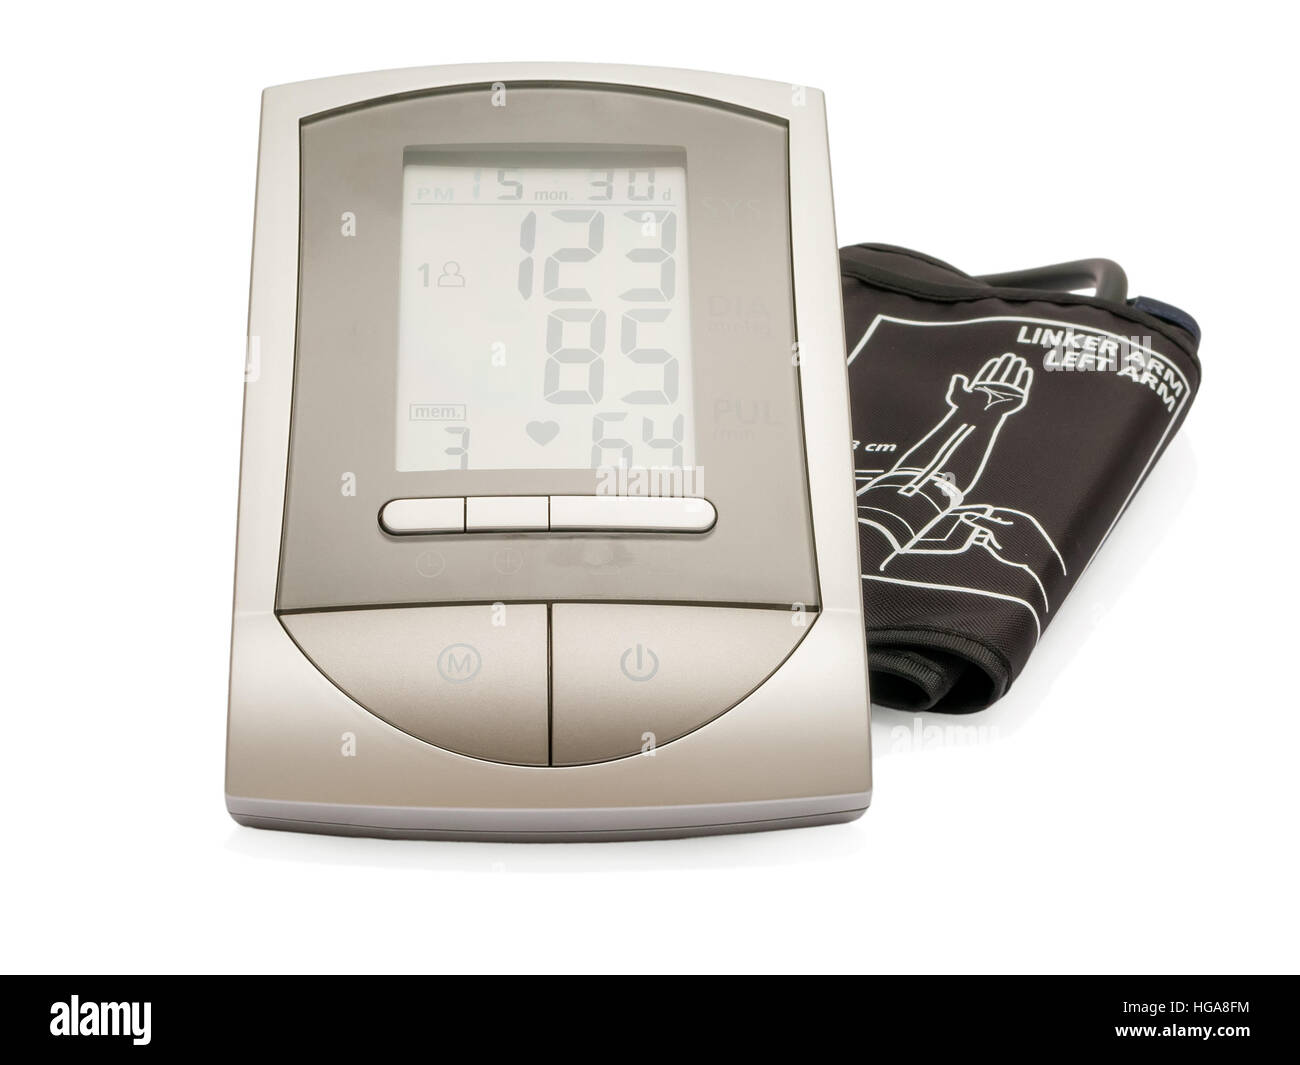 Modern electronic sphygmomanometer (blood pressure measure equipment) isolated on white background. - Stock Image